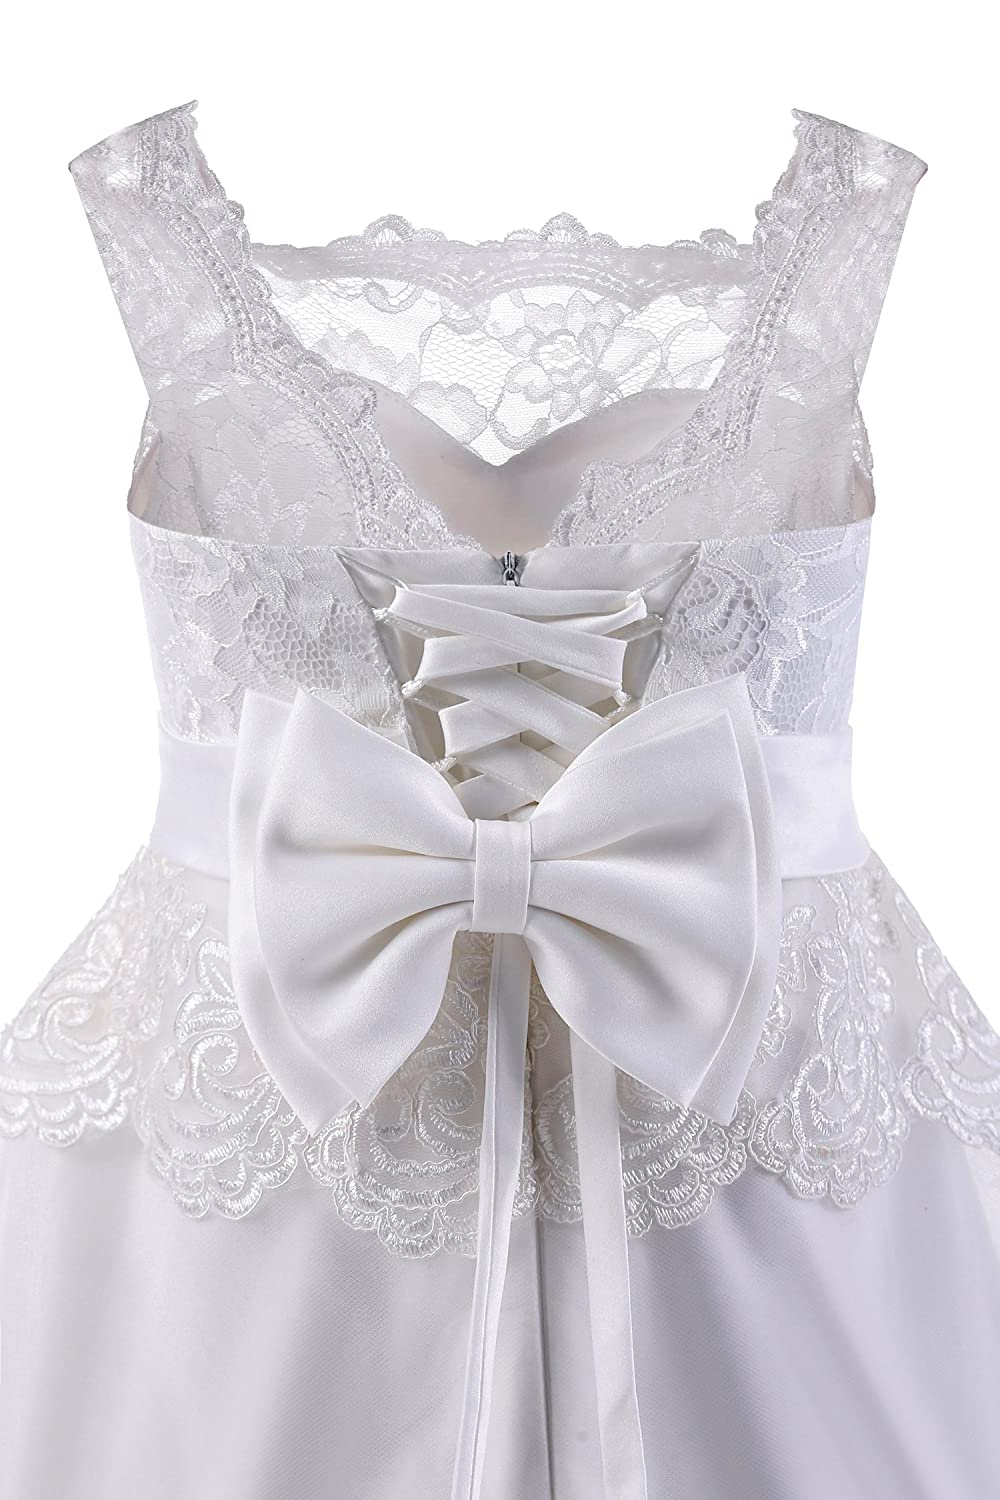 7e7a1878c18b Amazon.com: Abaowedding Ball Gown Lace up Flower First Communion Girl  Dresses: Clothing